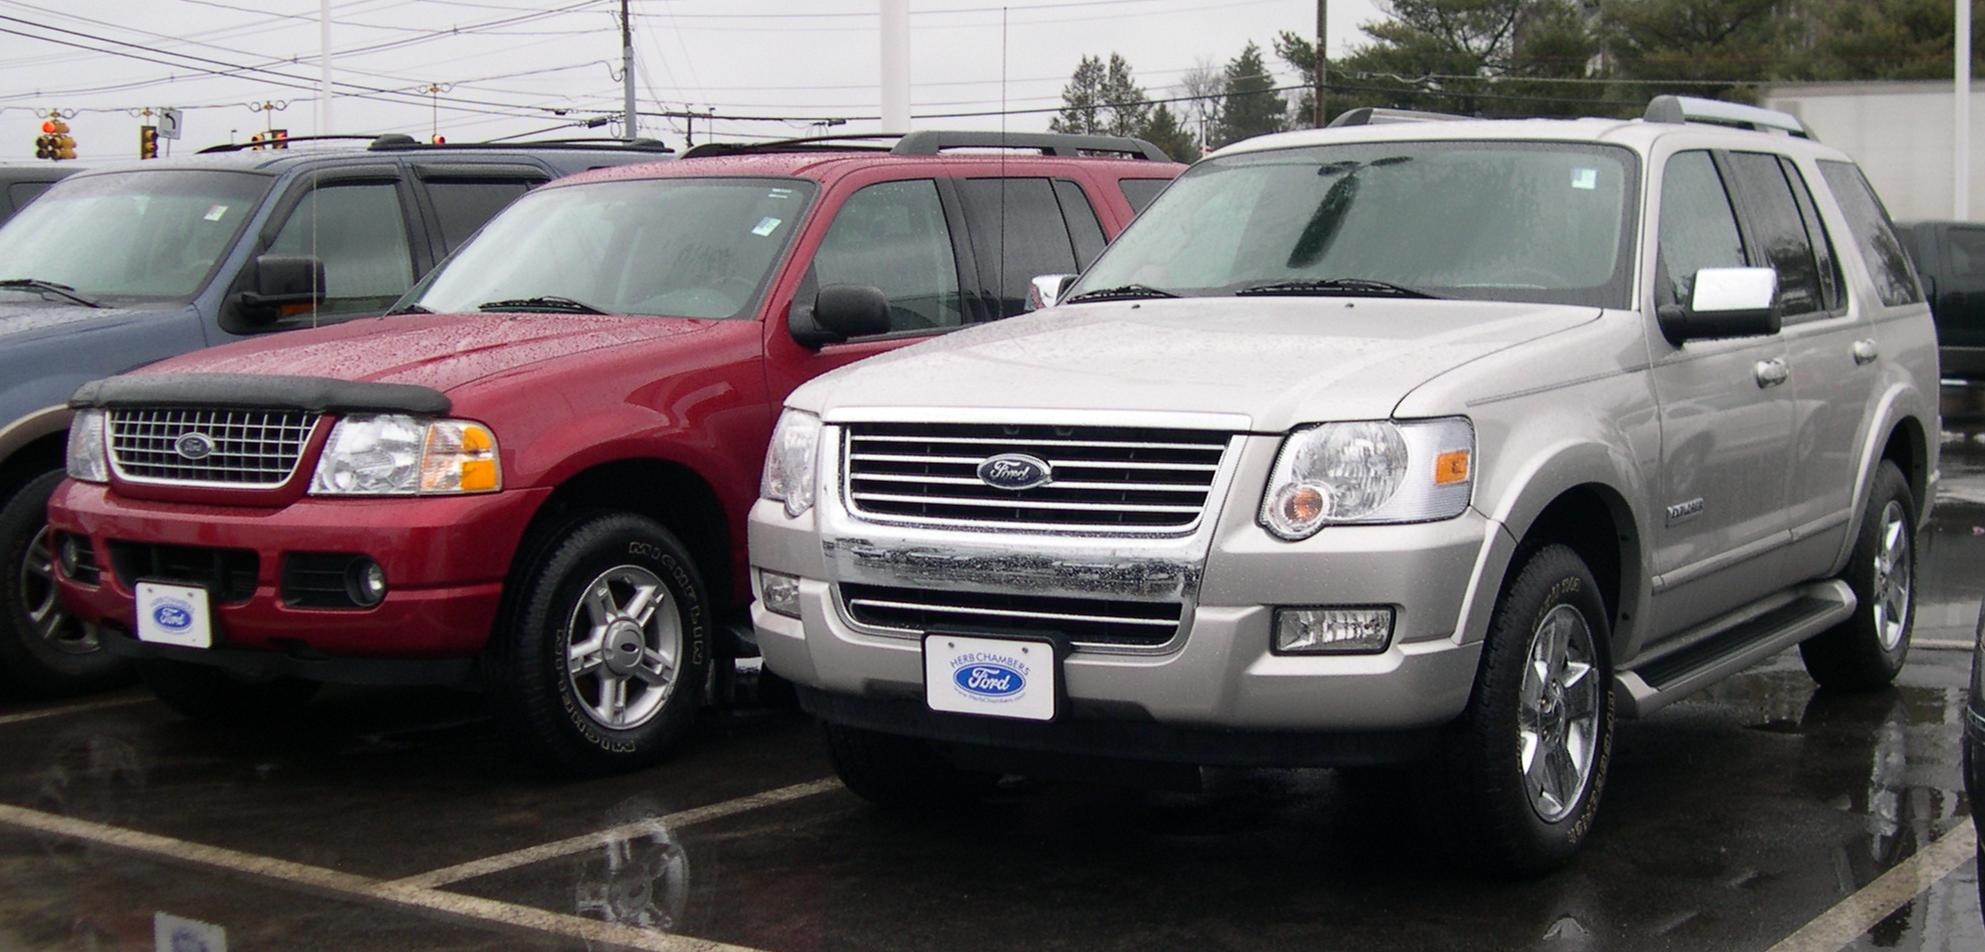 Ford Explorer 2005 Photo - 1